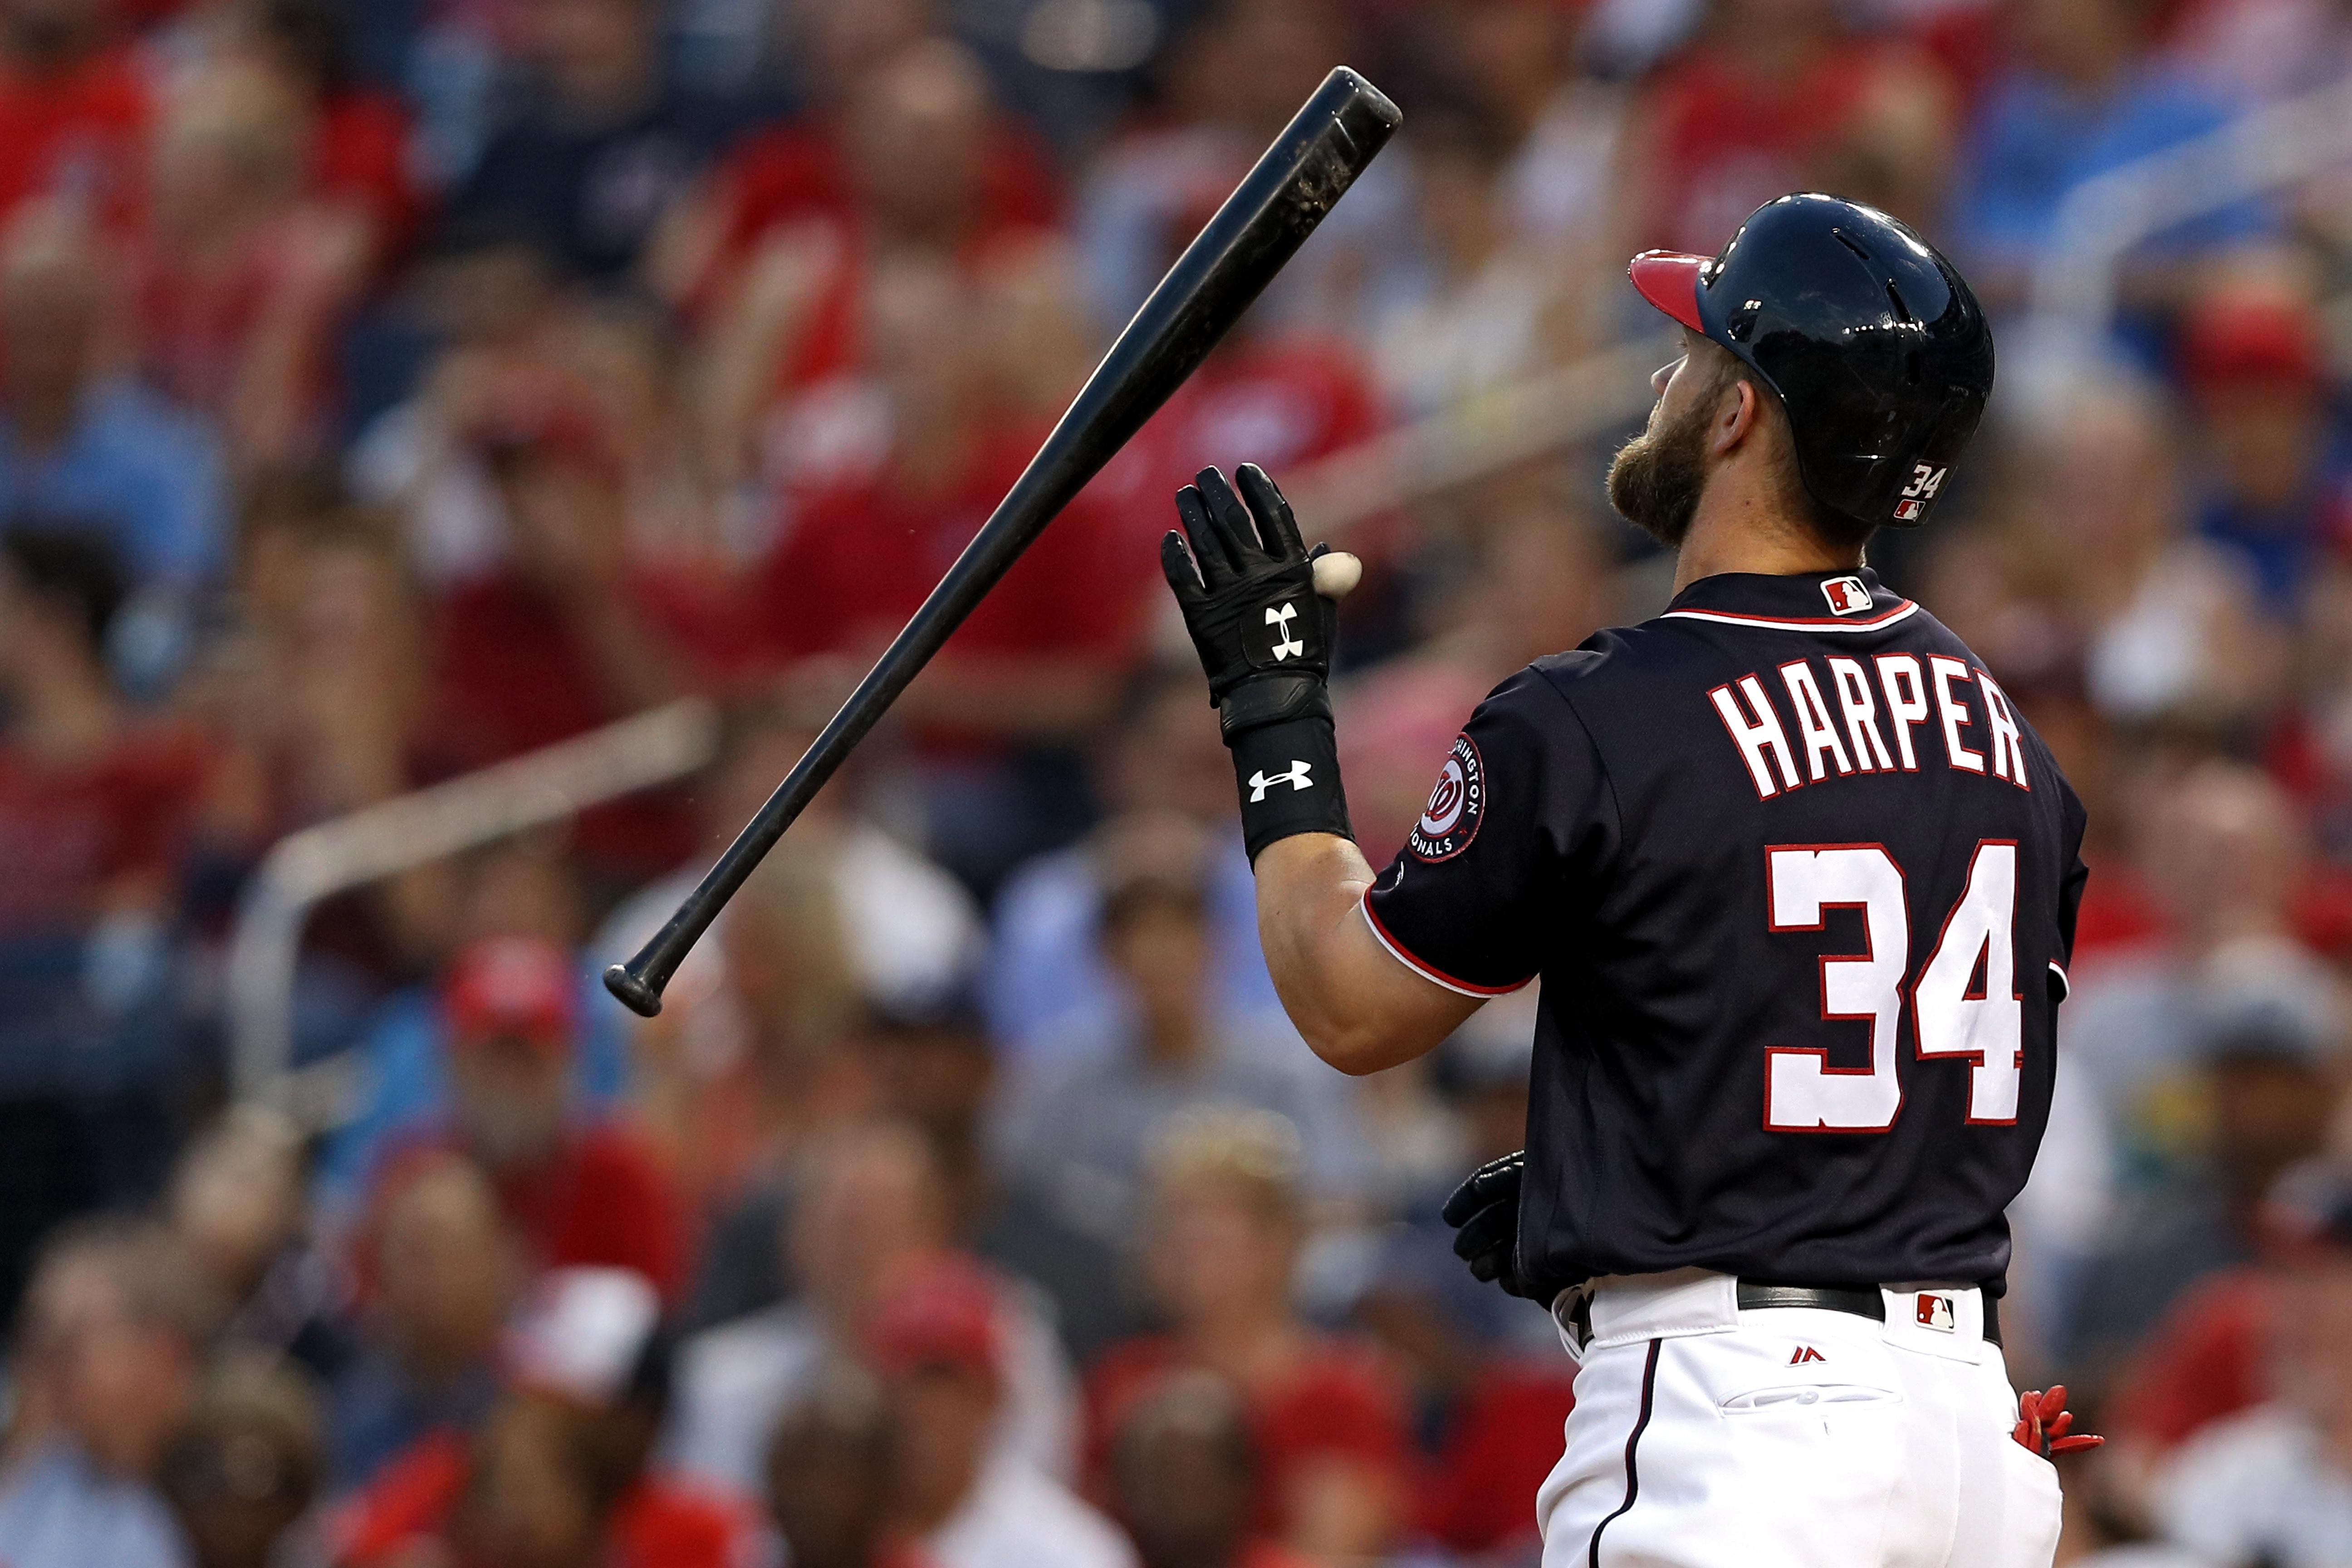 Bryce Harper Does Not Plan to Re-sign with Nationals